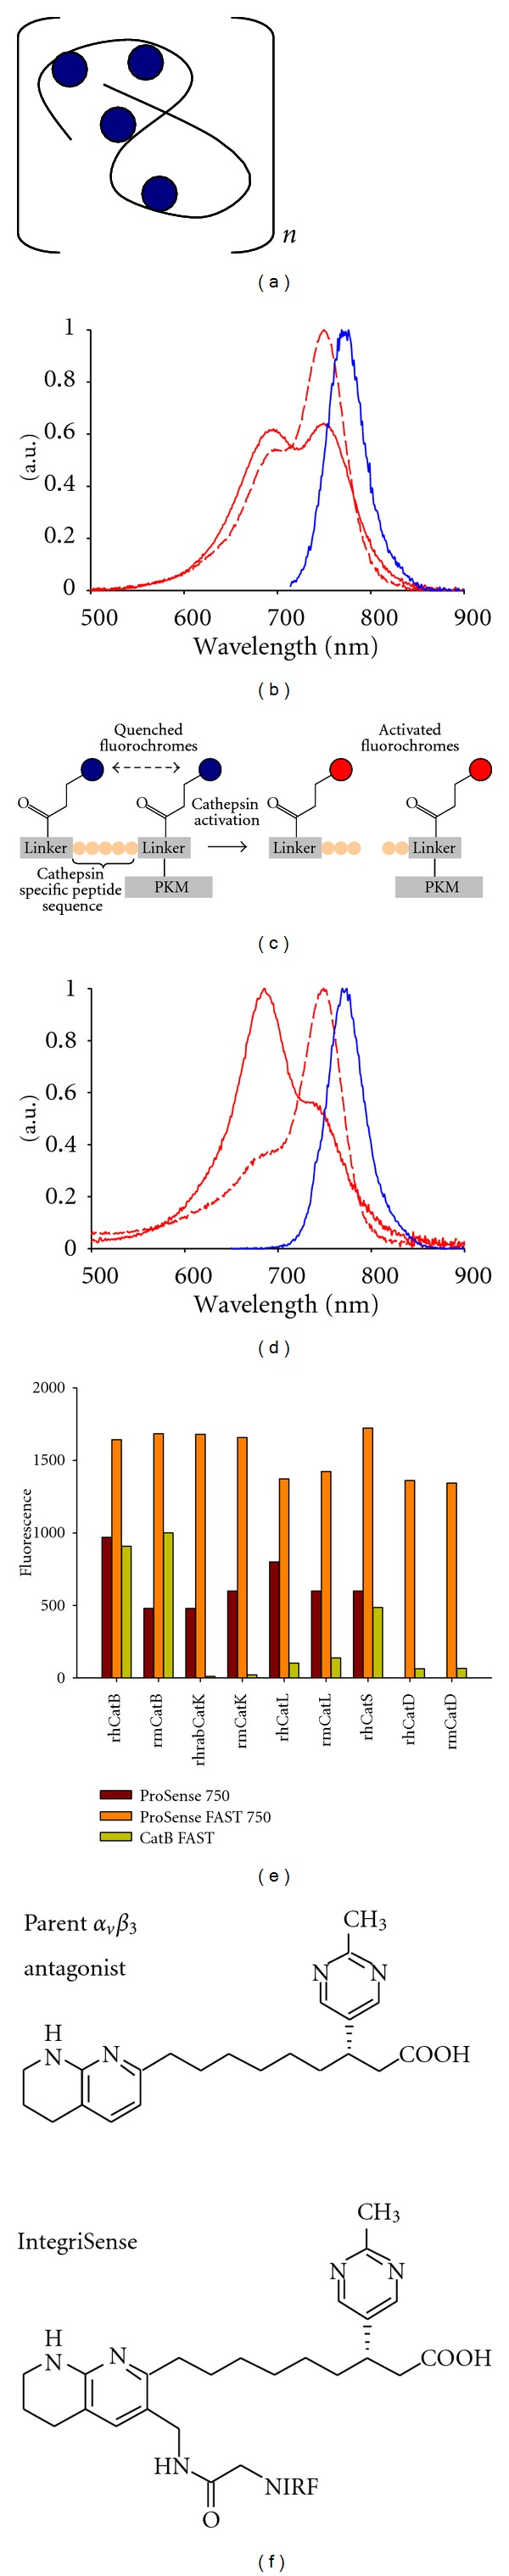 Basic characteristics of cathepsin and α v β 3 integrin agents. (a), (b) Cartoon and spectra of ProSense ~400 kDa polylysine-based [ 27 ]; (c), (d) Cartoon and spectra of FAST peptide-based agents ~23 kDa, PKM: pharmacokinetic modifier, absorption spectra (before activation—dash red and after activation: solid red), emission spectra: solid blue; (e), selectivity in cathepsin probe activation at 24 hours incubation; (f), Chemical structure of parent α v β 3 integrin ligand (top) and IntegriSense (bottom, ~1278 Da) NIRF: VivoTag fluorophore.